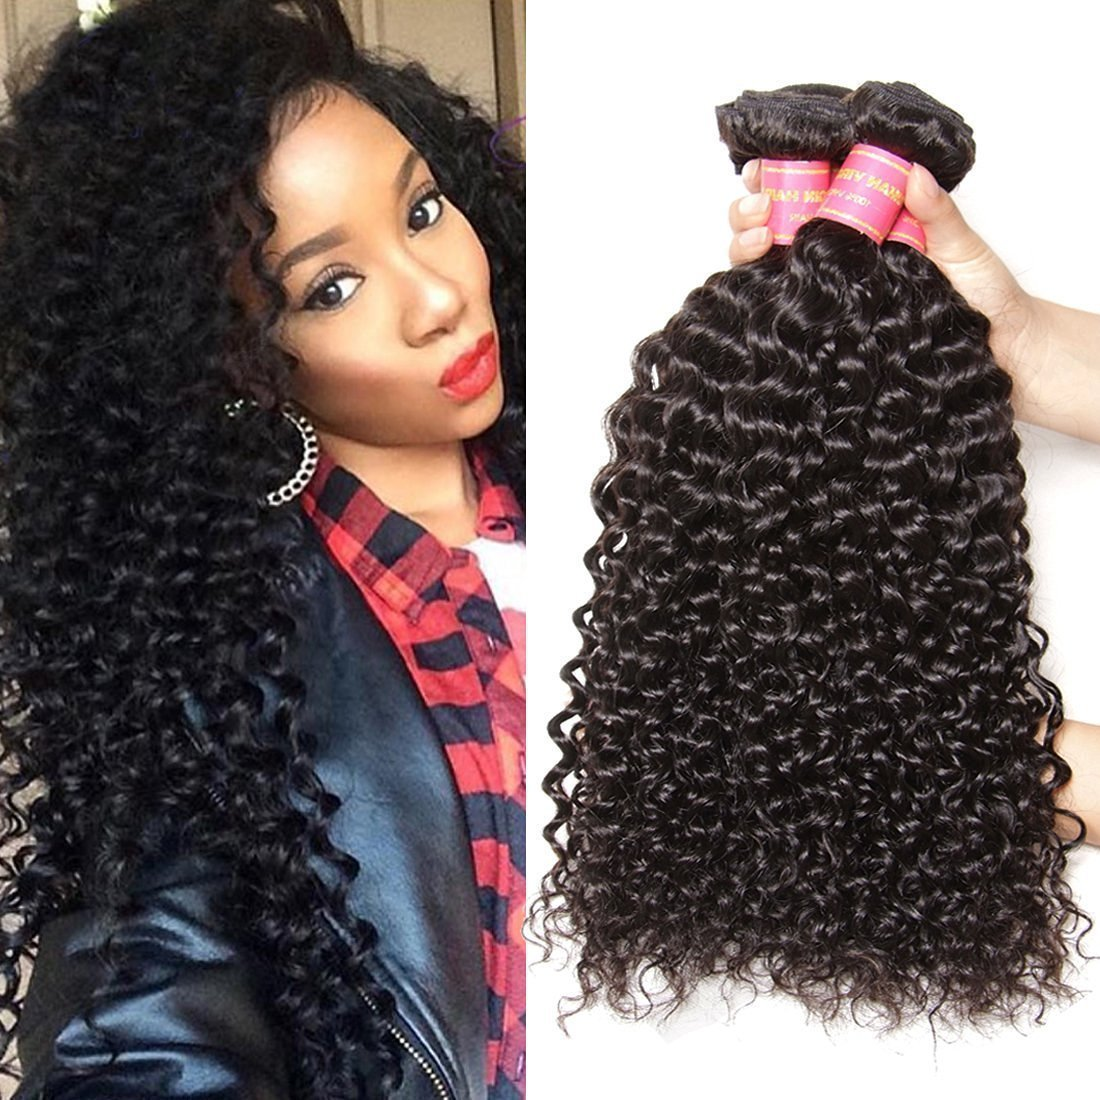 Amazon jolia hair 7a grade virgin brazilian body wave hair 3 jolia hair virgin brazilian curly hair weave 3 bundles 7a unprocessed brazilian virgin human hair pmusecretfo Gallery